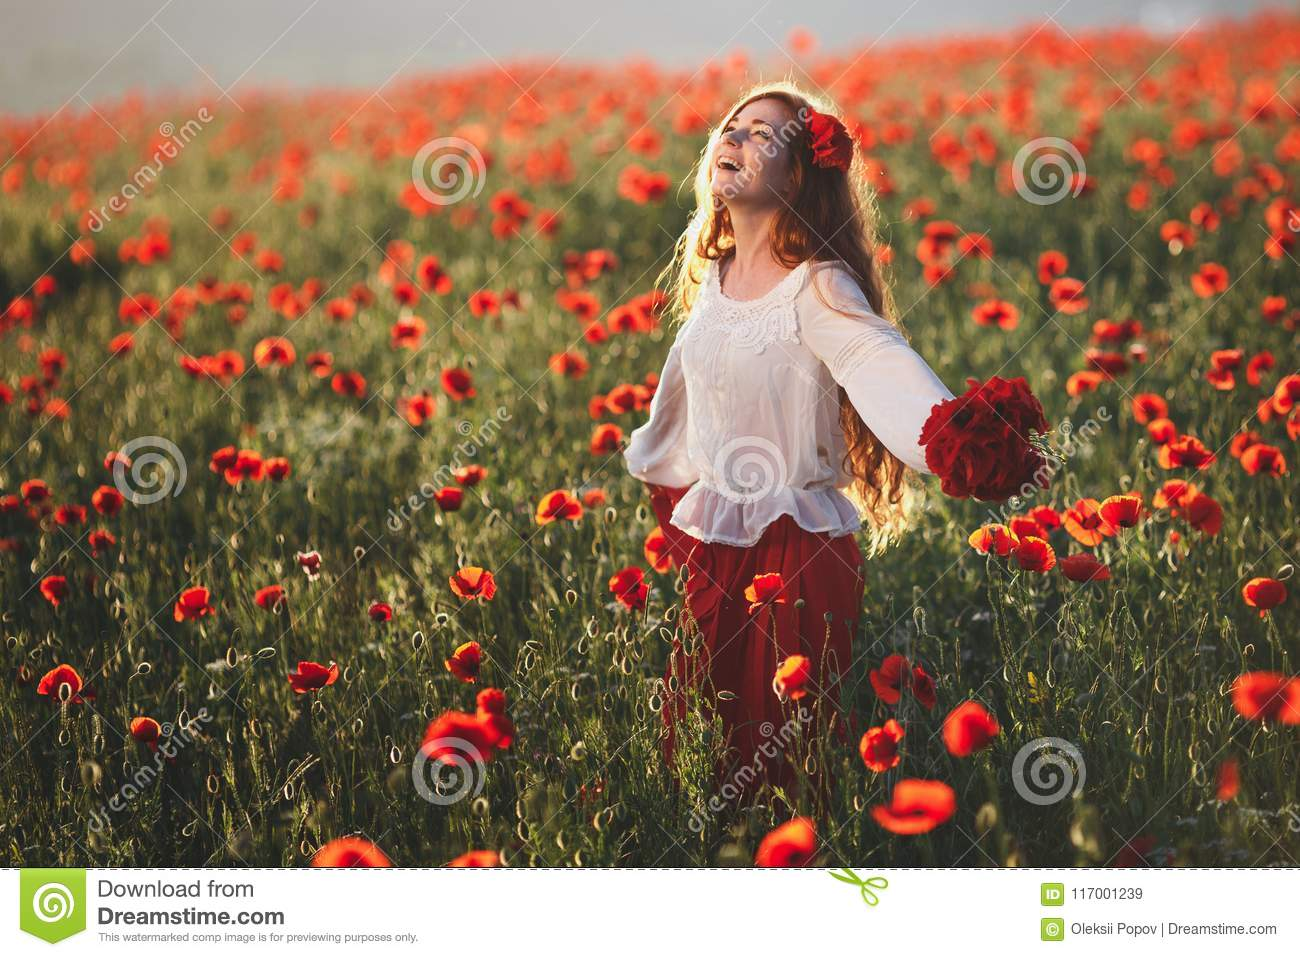 Young beautiful woman walking and dancing through a poppy field at sunset